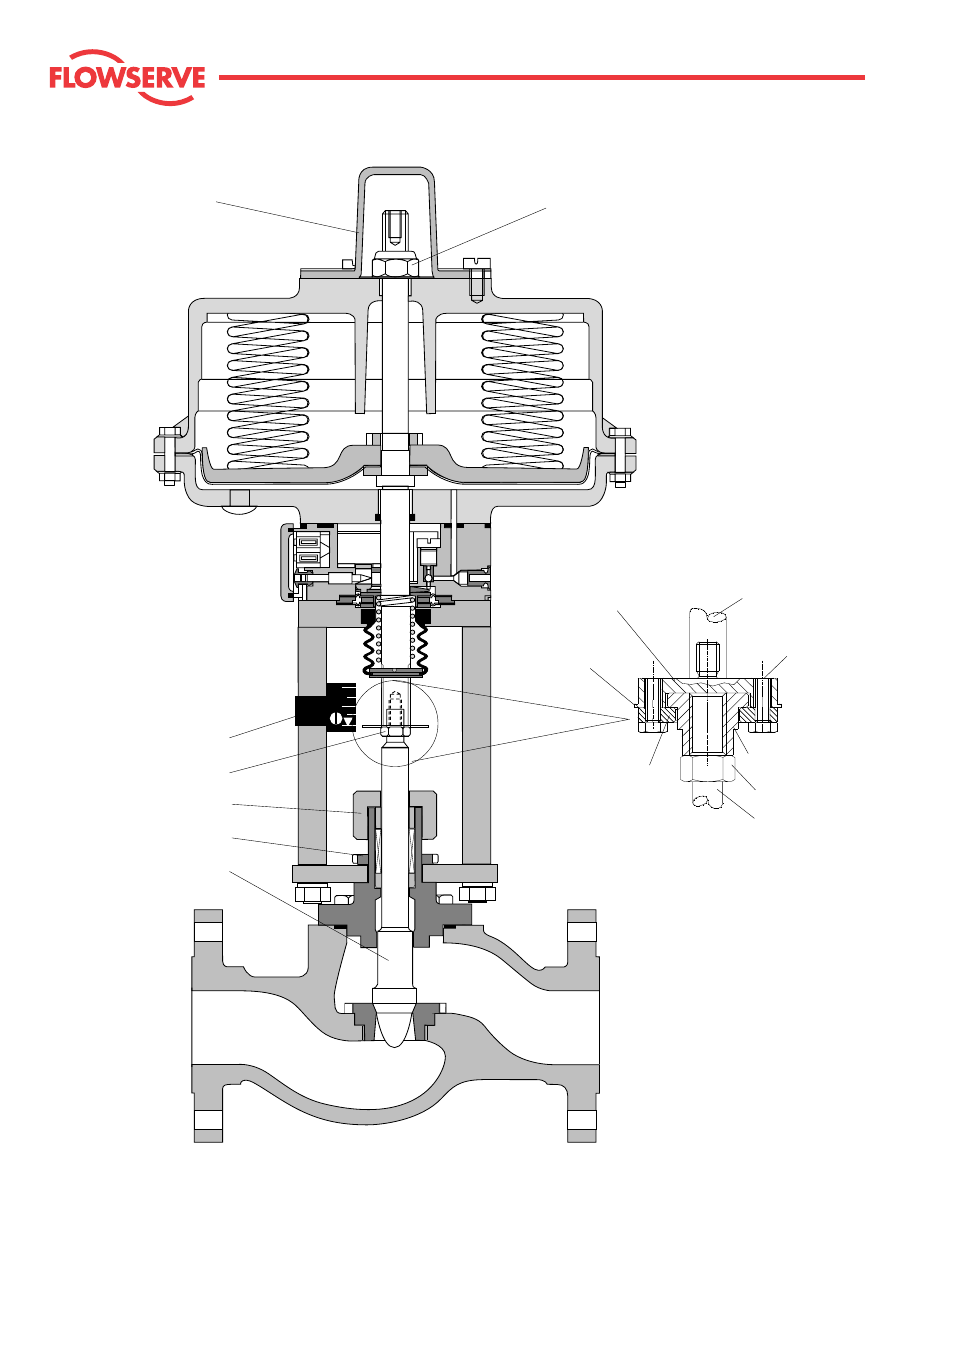 Kammer control valves, Fig. 8: typical actuator and valve